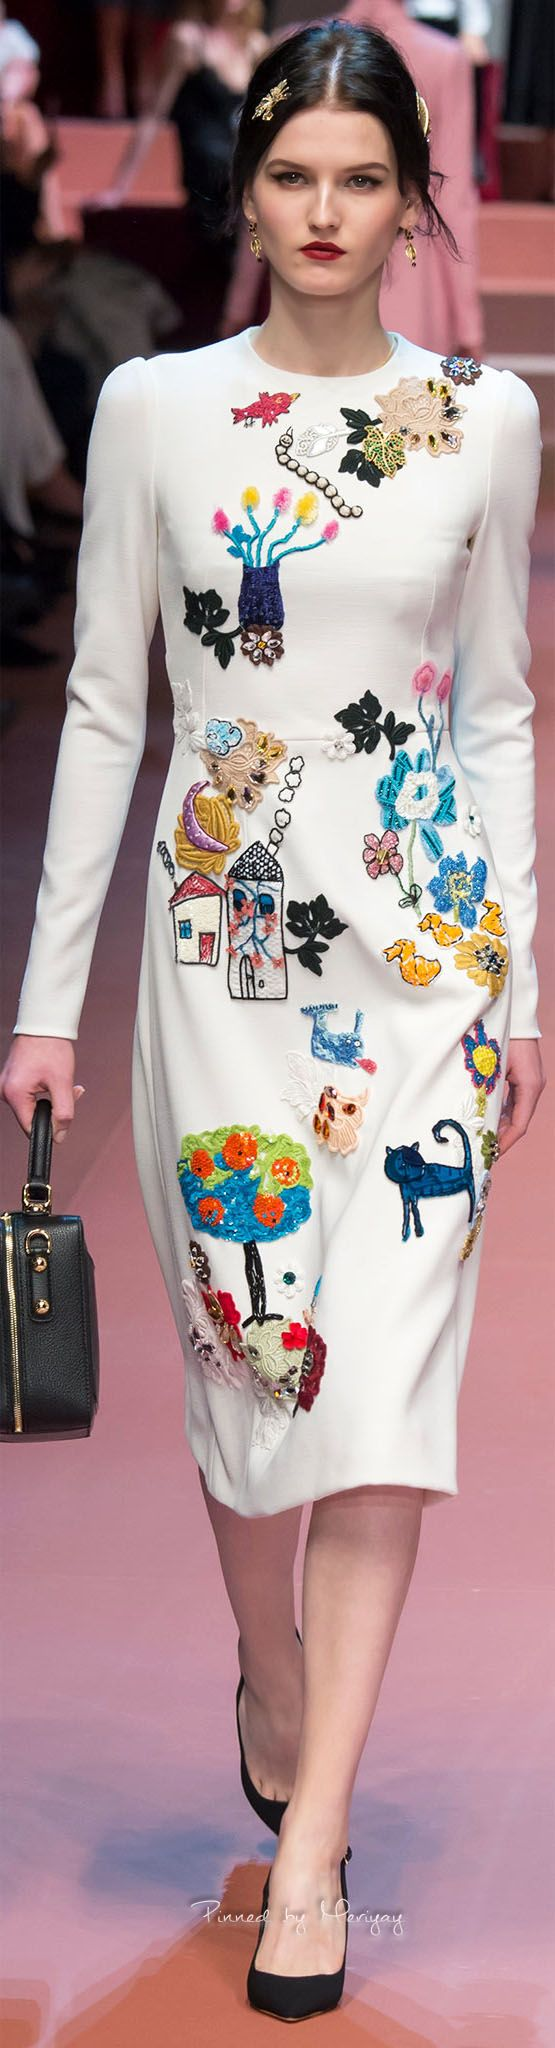 best sewing mishaps on the runway images on pinterest